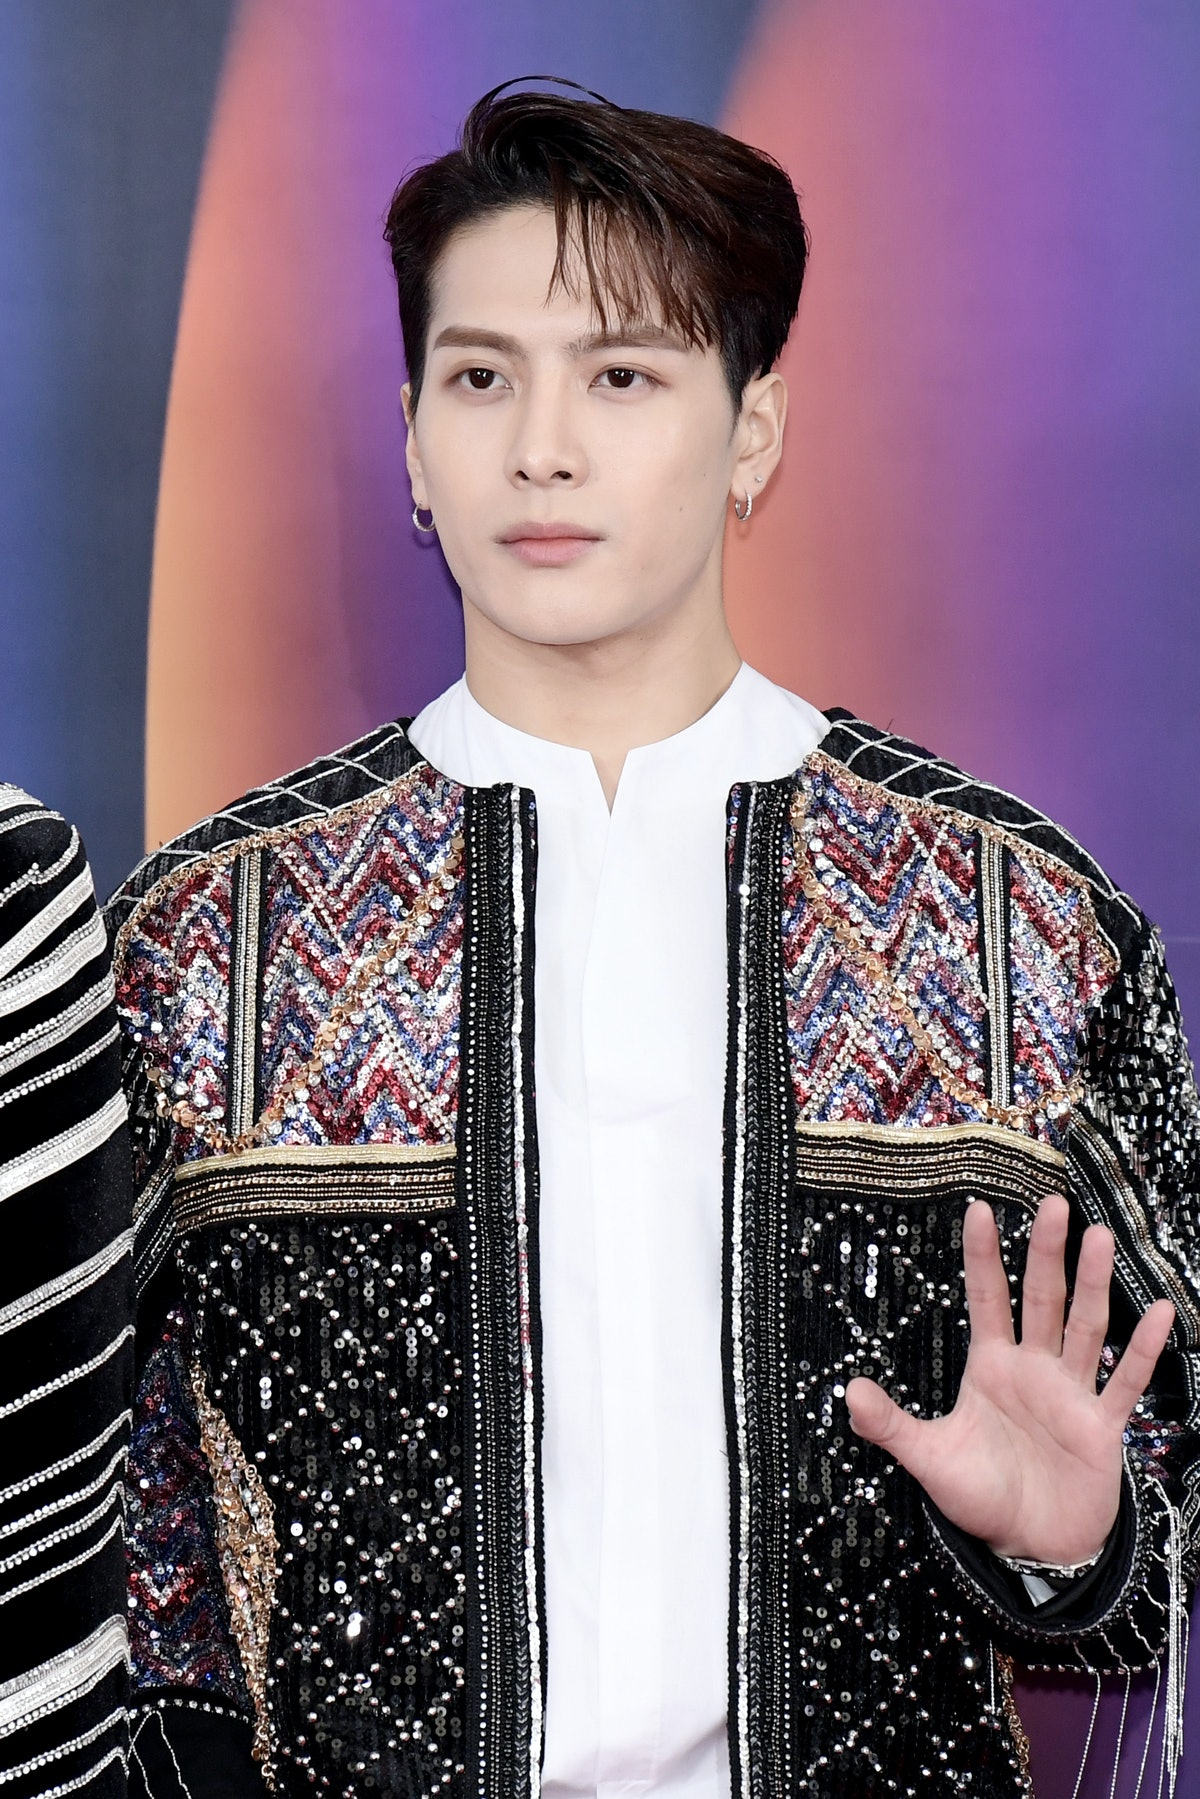 BTS' friends outside of the group include GOT7's Jackson Wang.